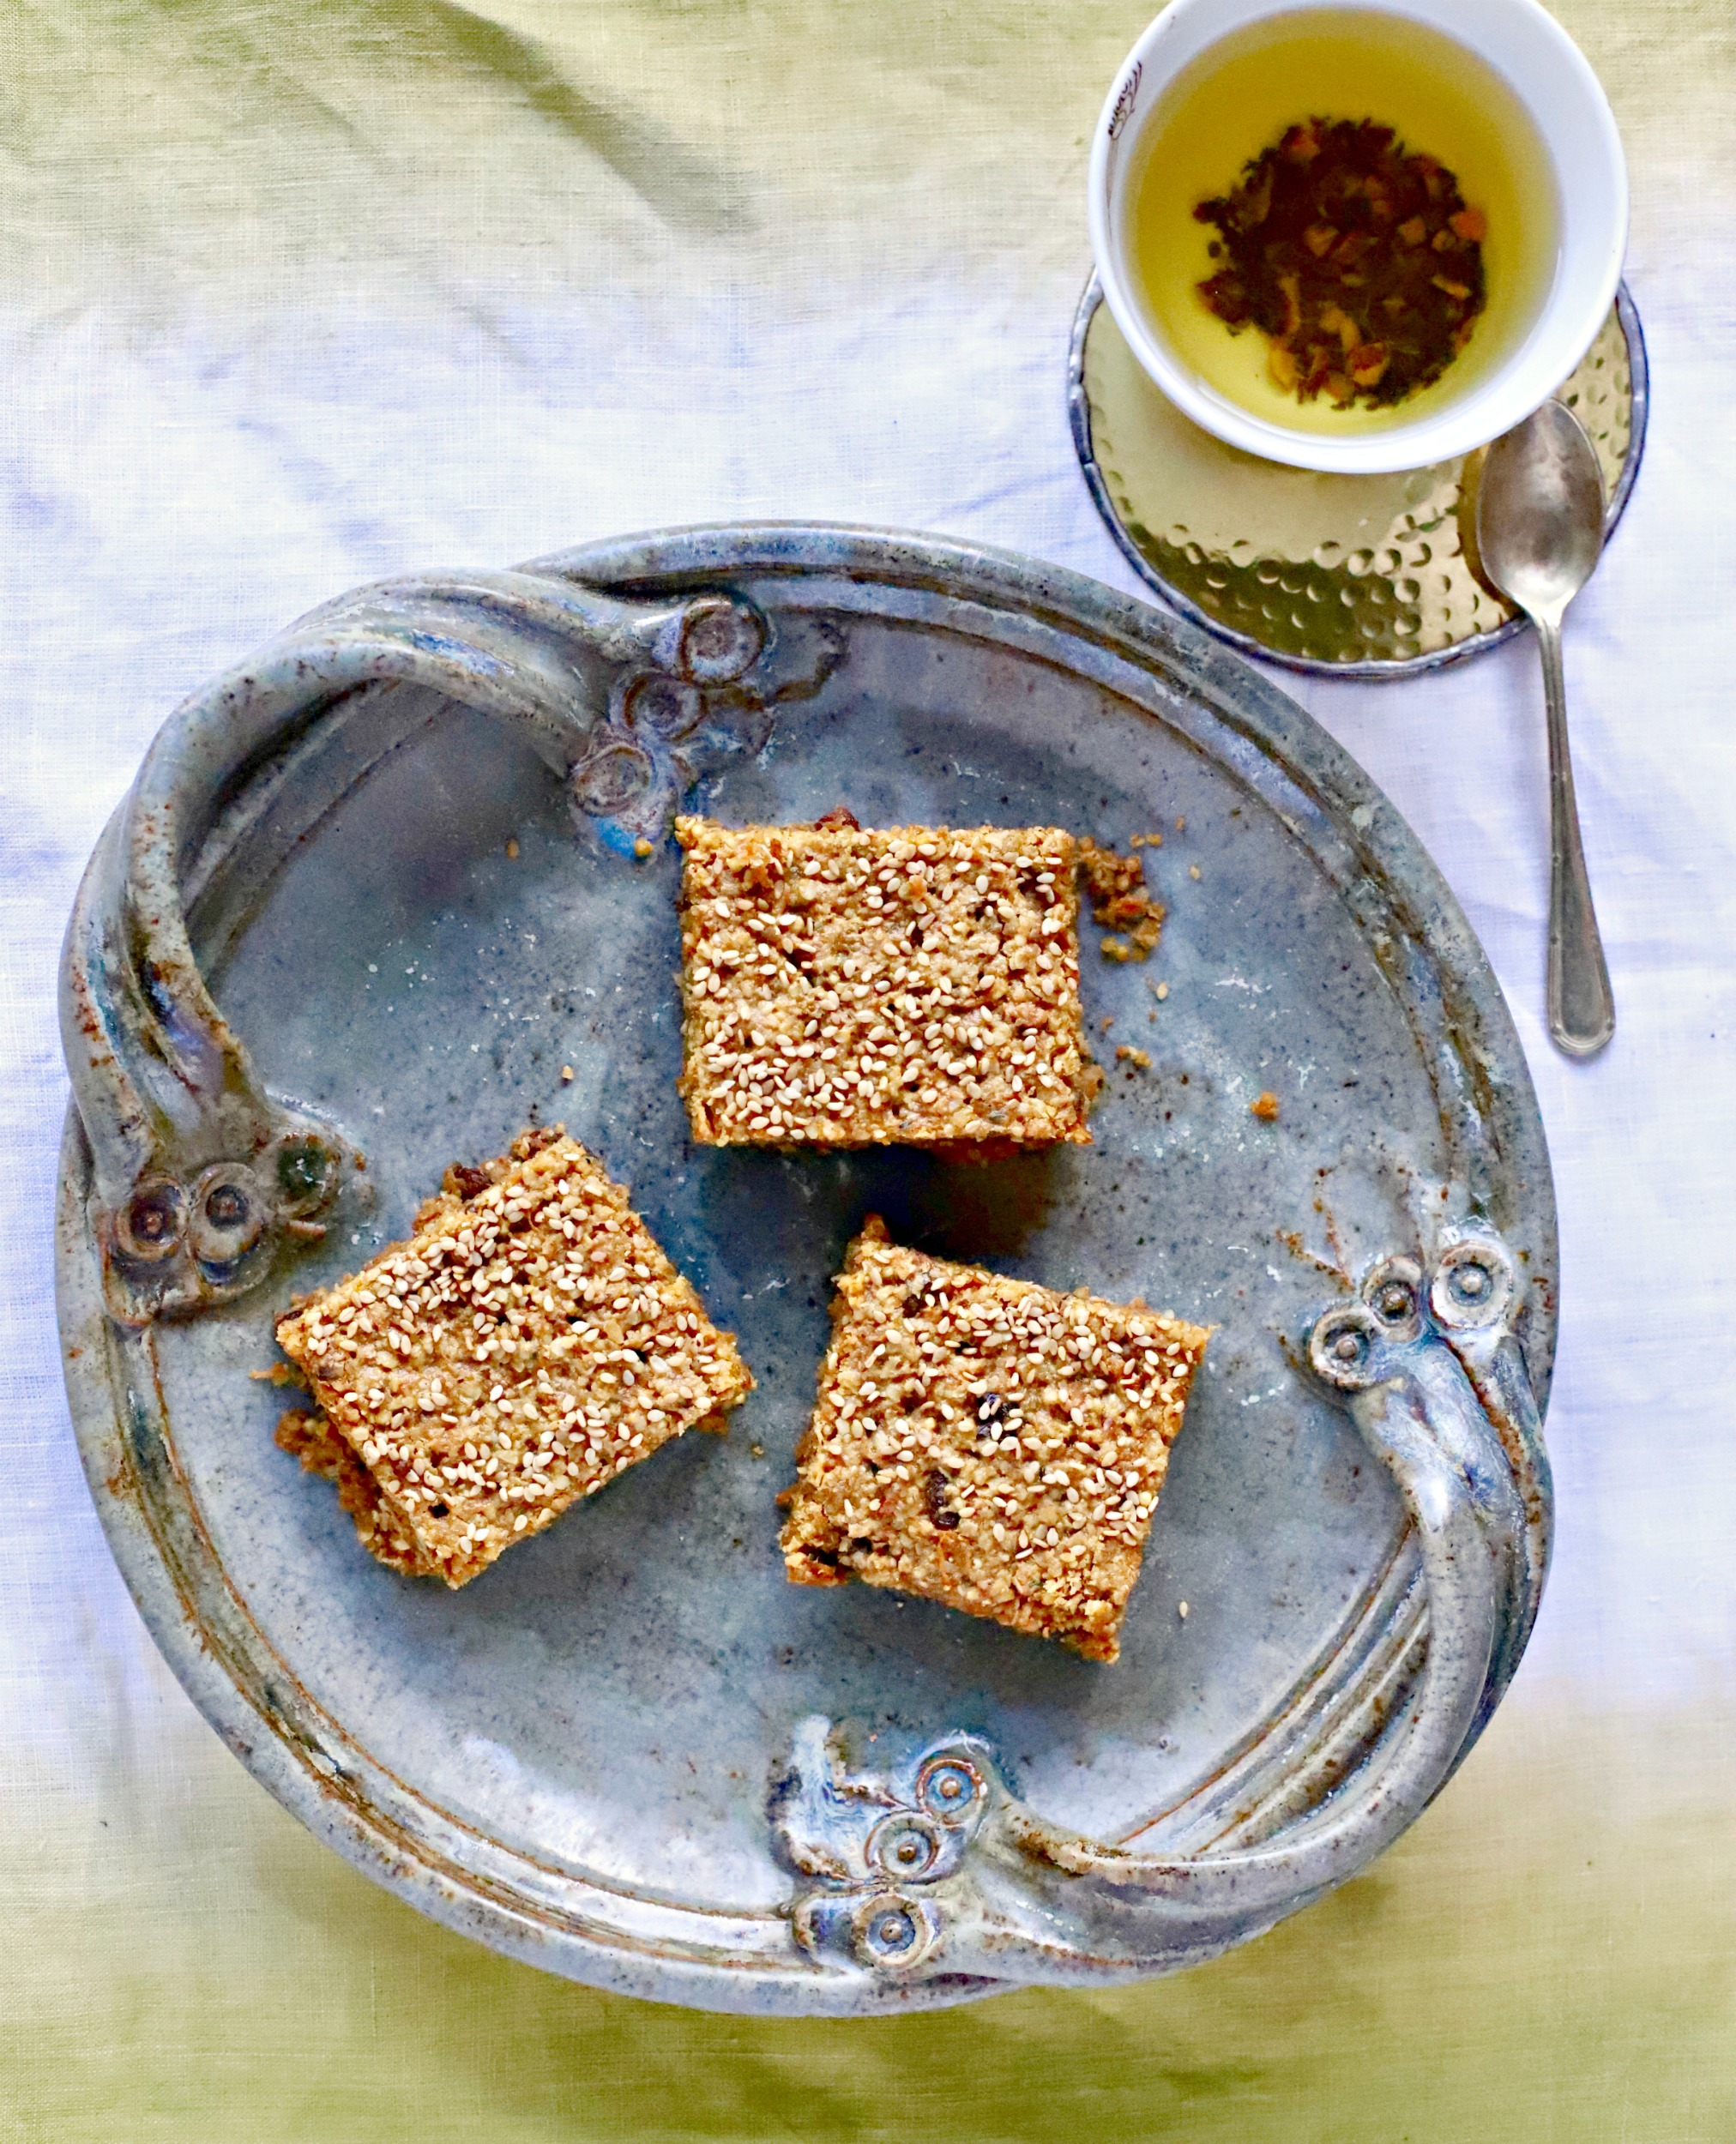 Make these Carrot Cake Tahini Power Bars for a healthy energising #snack. #glutenfree, wholegrain and #vegan. #energybars #powerbars